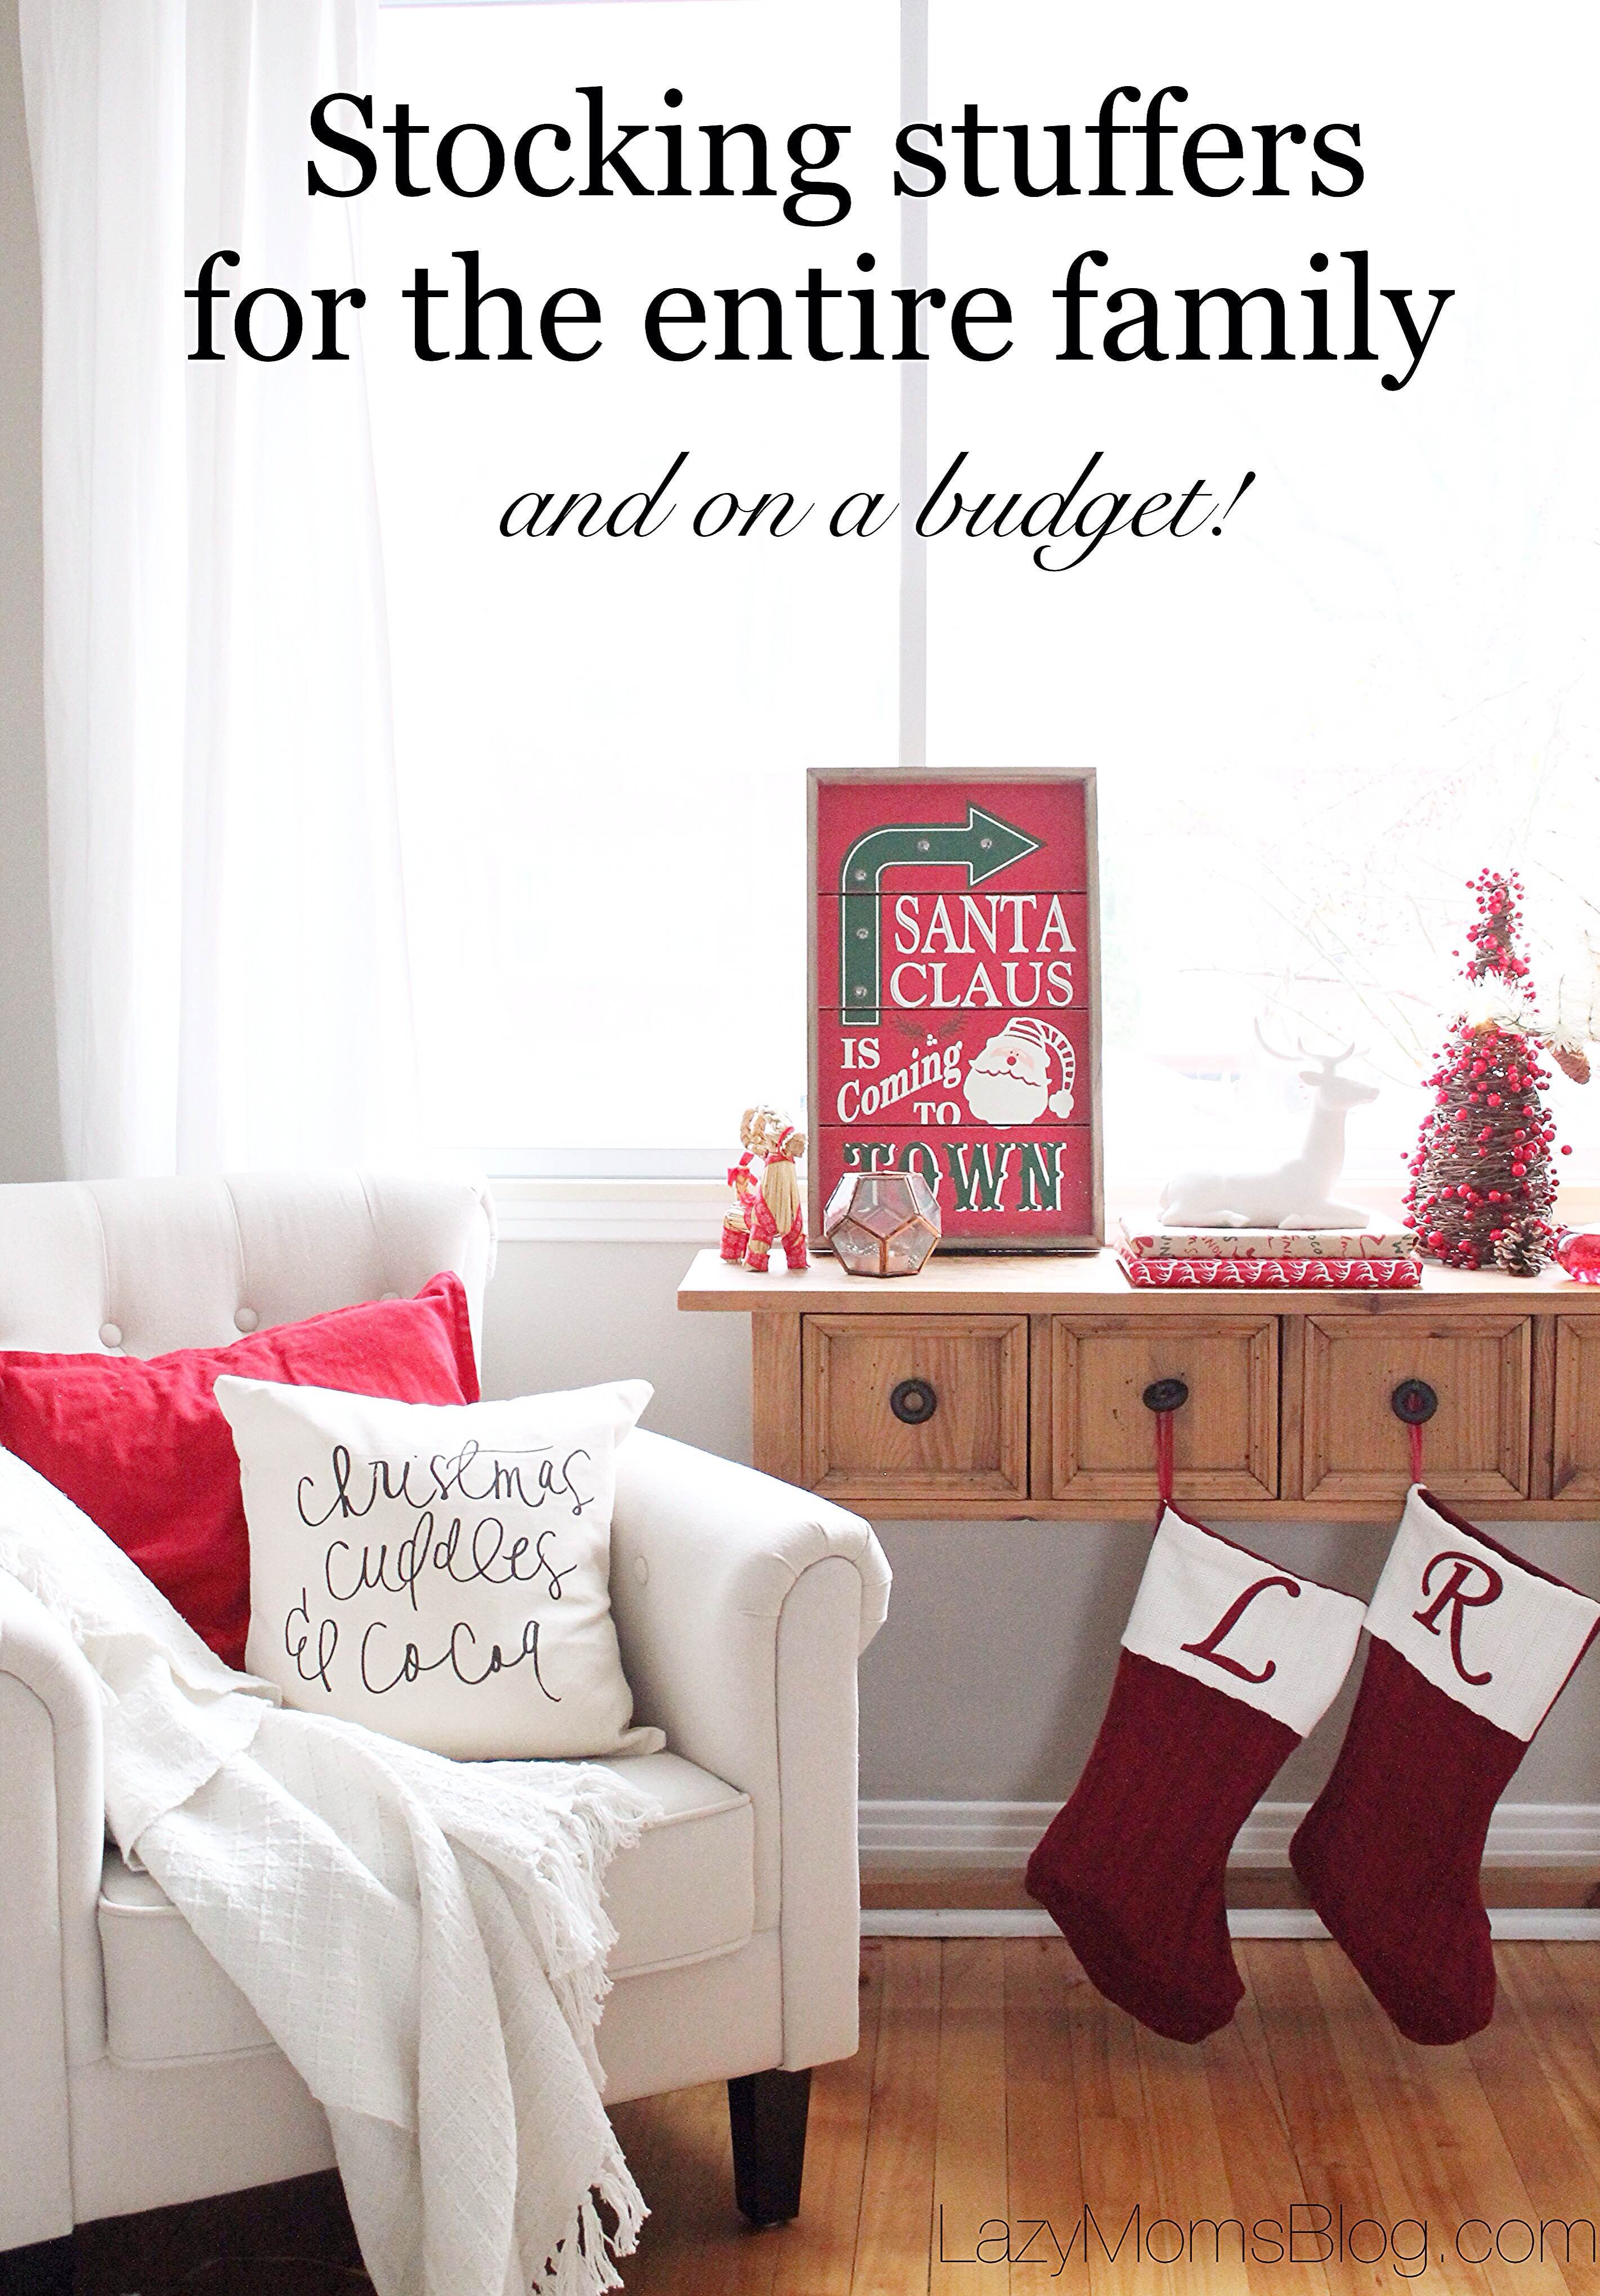 Great ideas for stocking stuffers for entire family, on a bugdet and all biught in one place! Great time and money saver for Christmas!